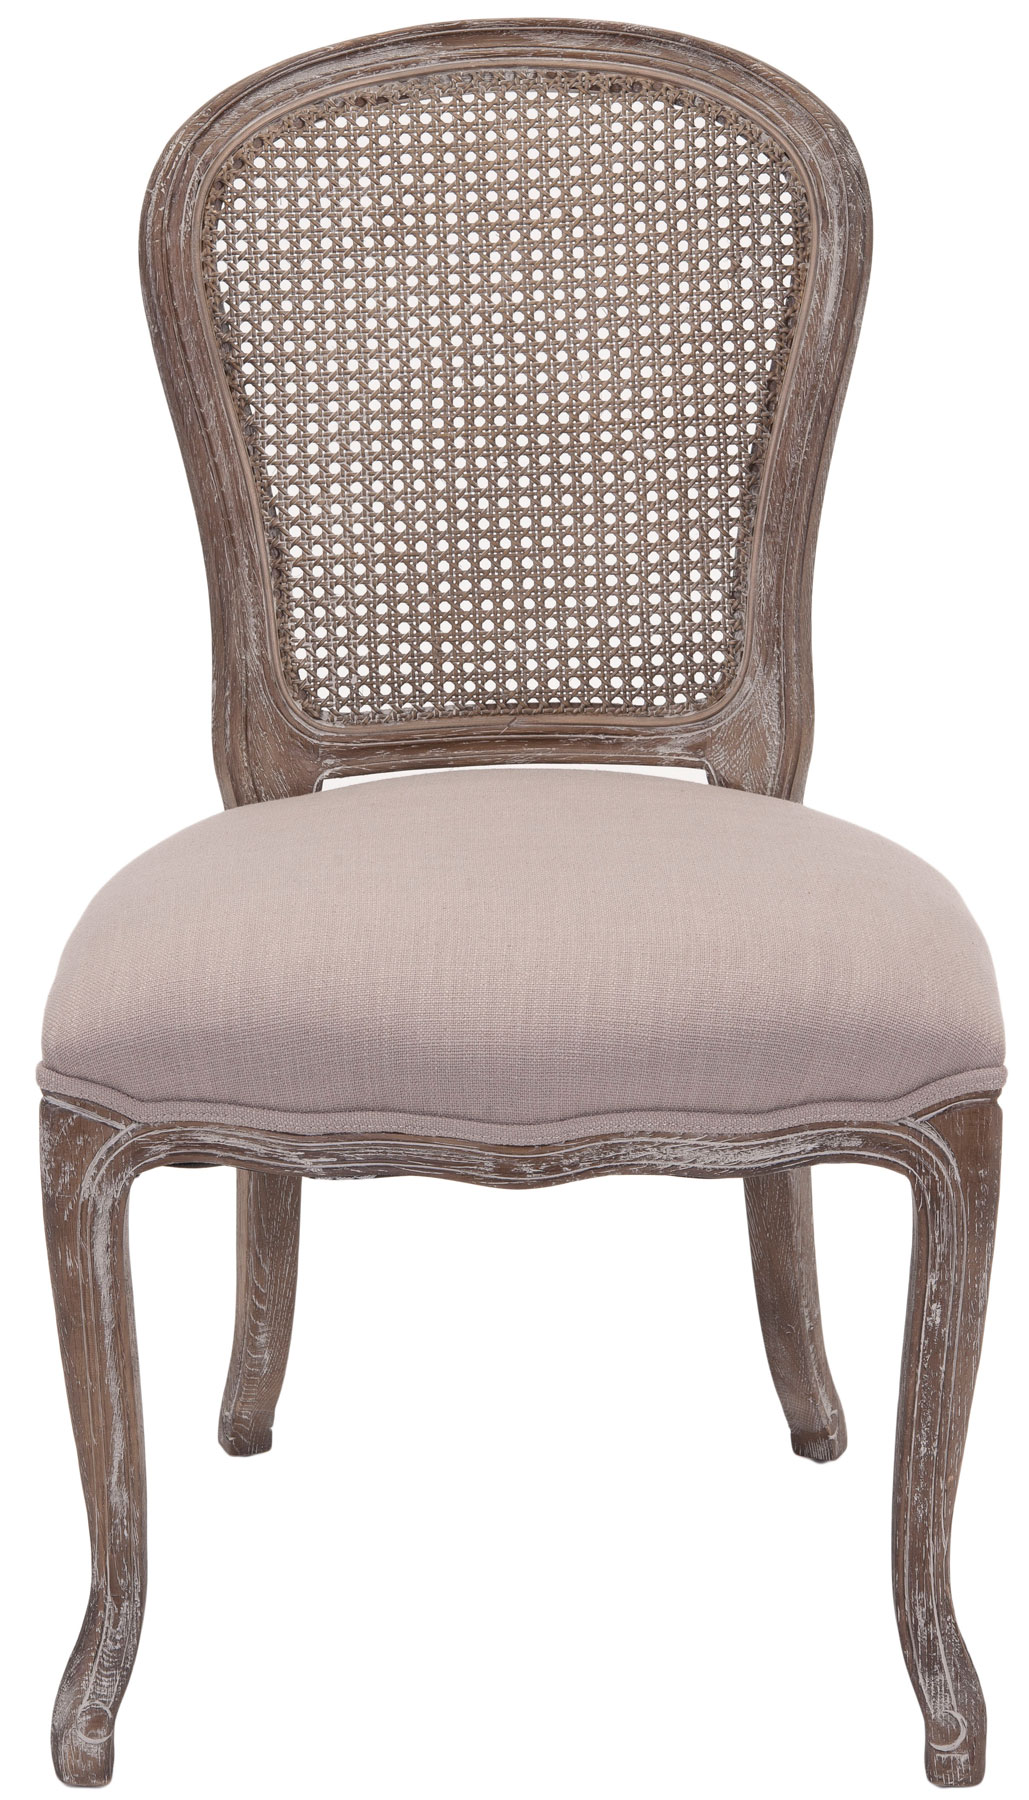 Safavieh Chair Mcr4541a Set2 Dining Chairs Furniture By Safavieh